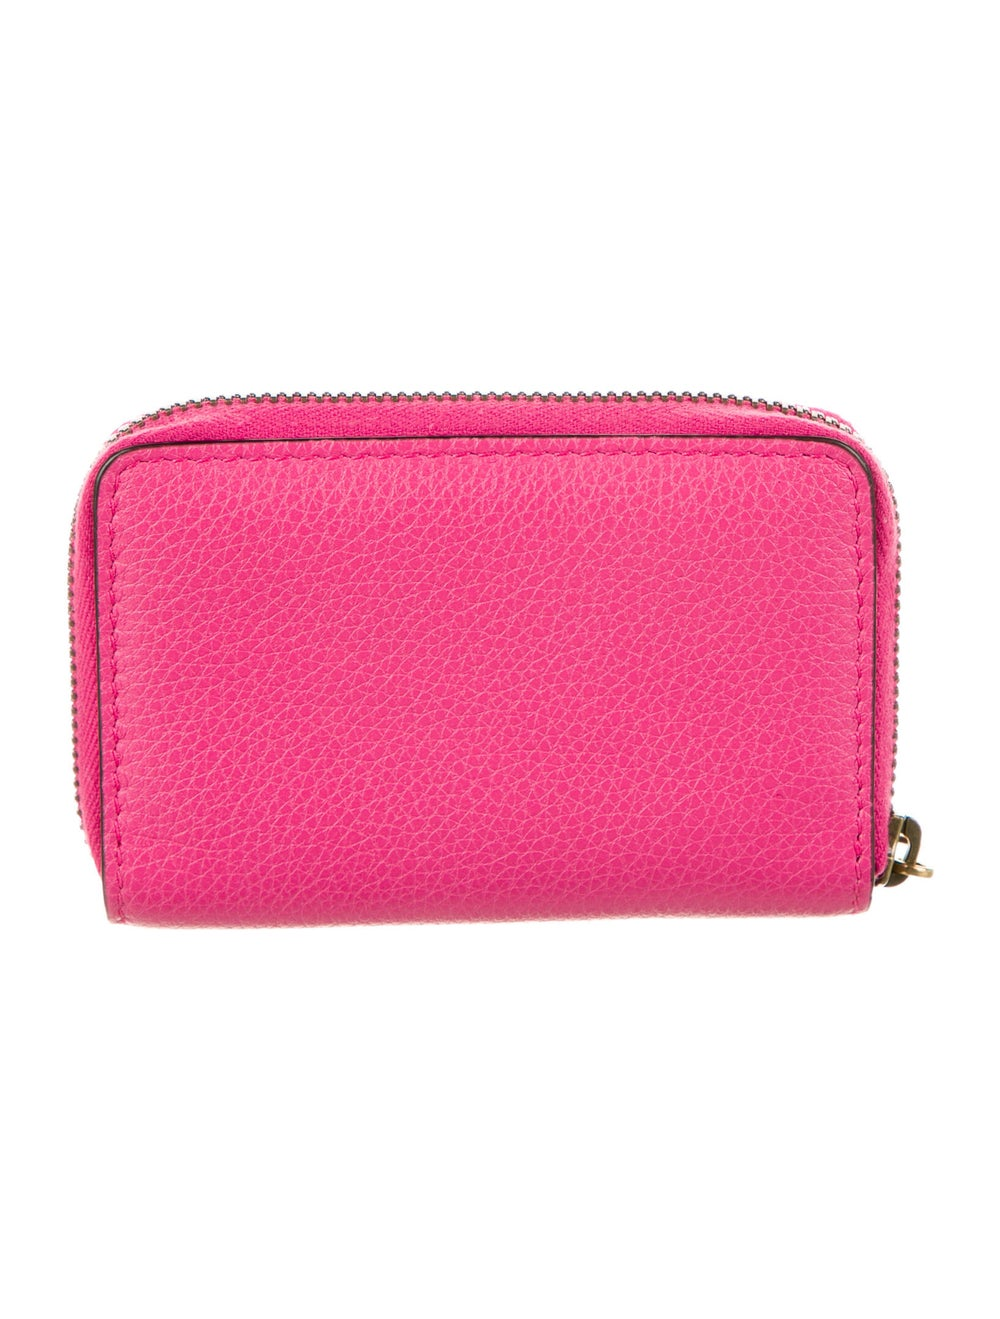 Gucci Web Accent Leather Compact Wallet Pink - image 4